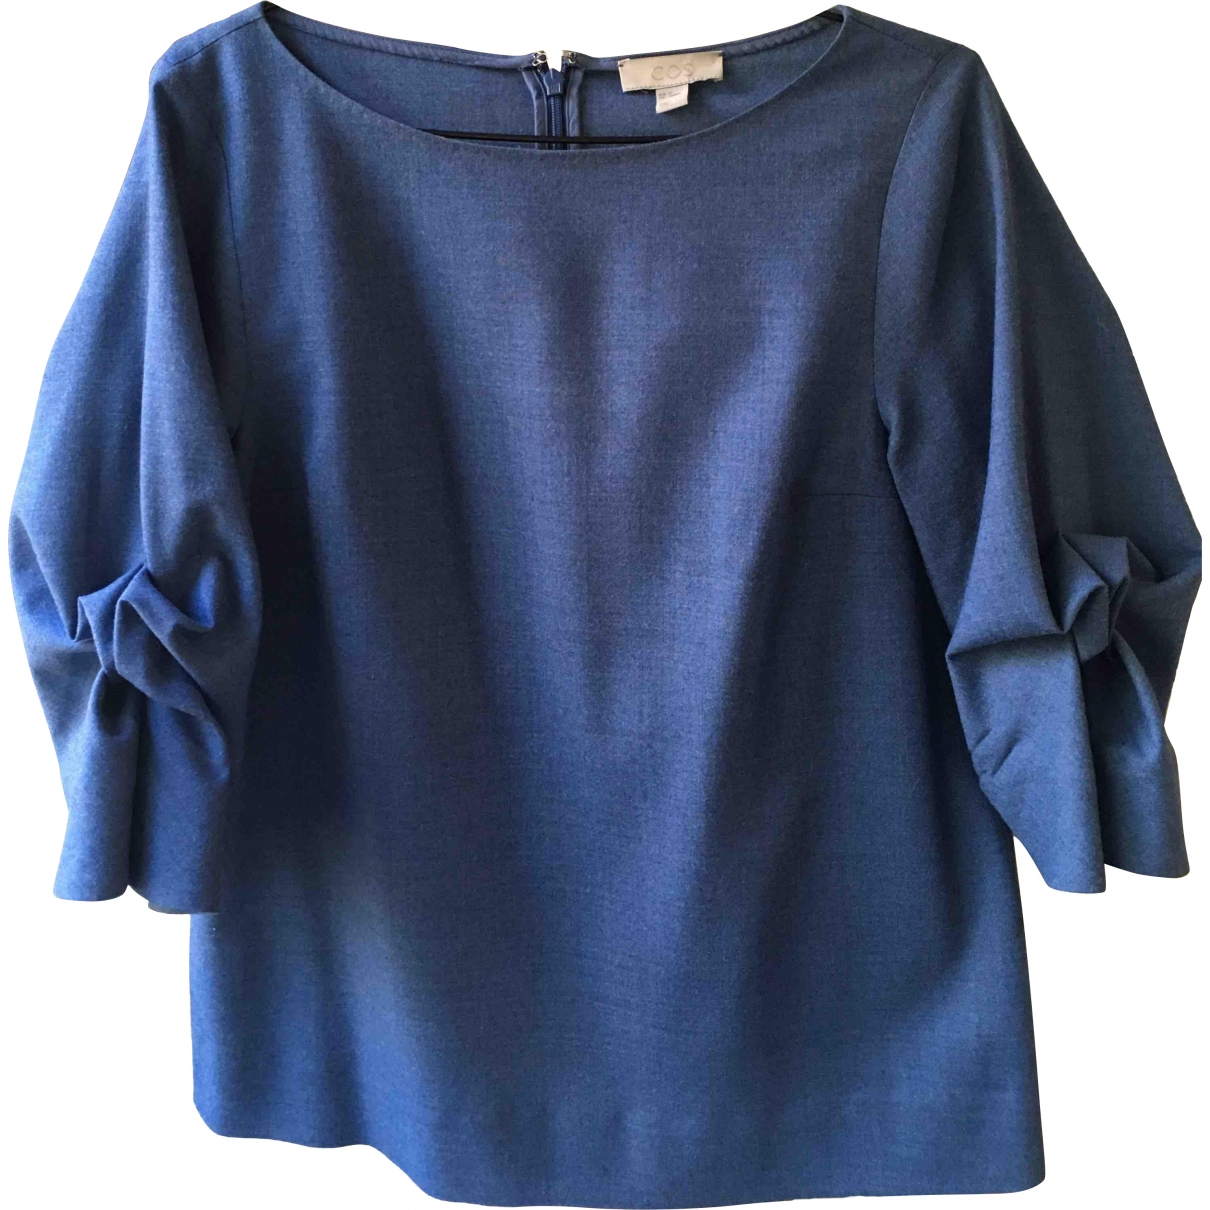 Cos \N Blue  top for Women 34 FR